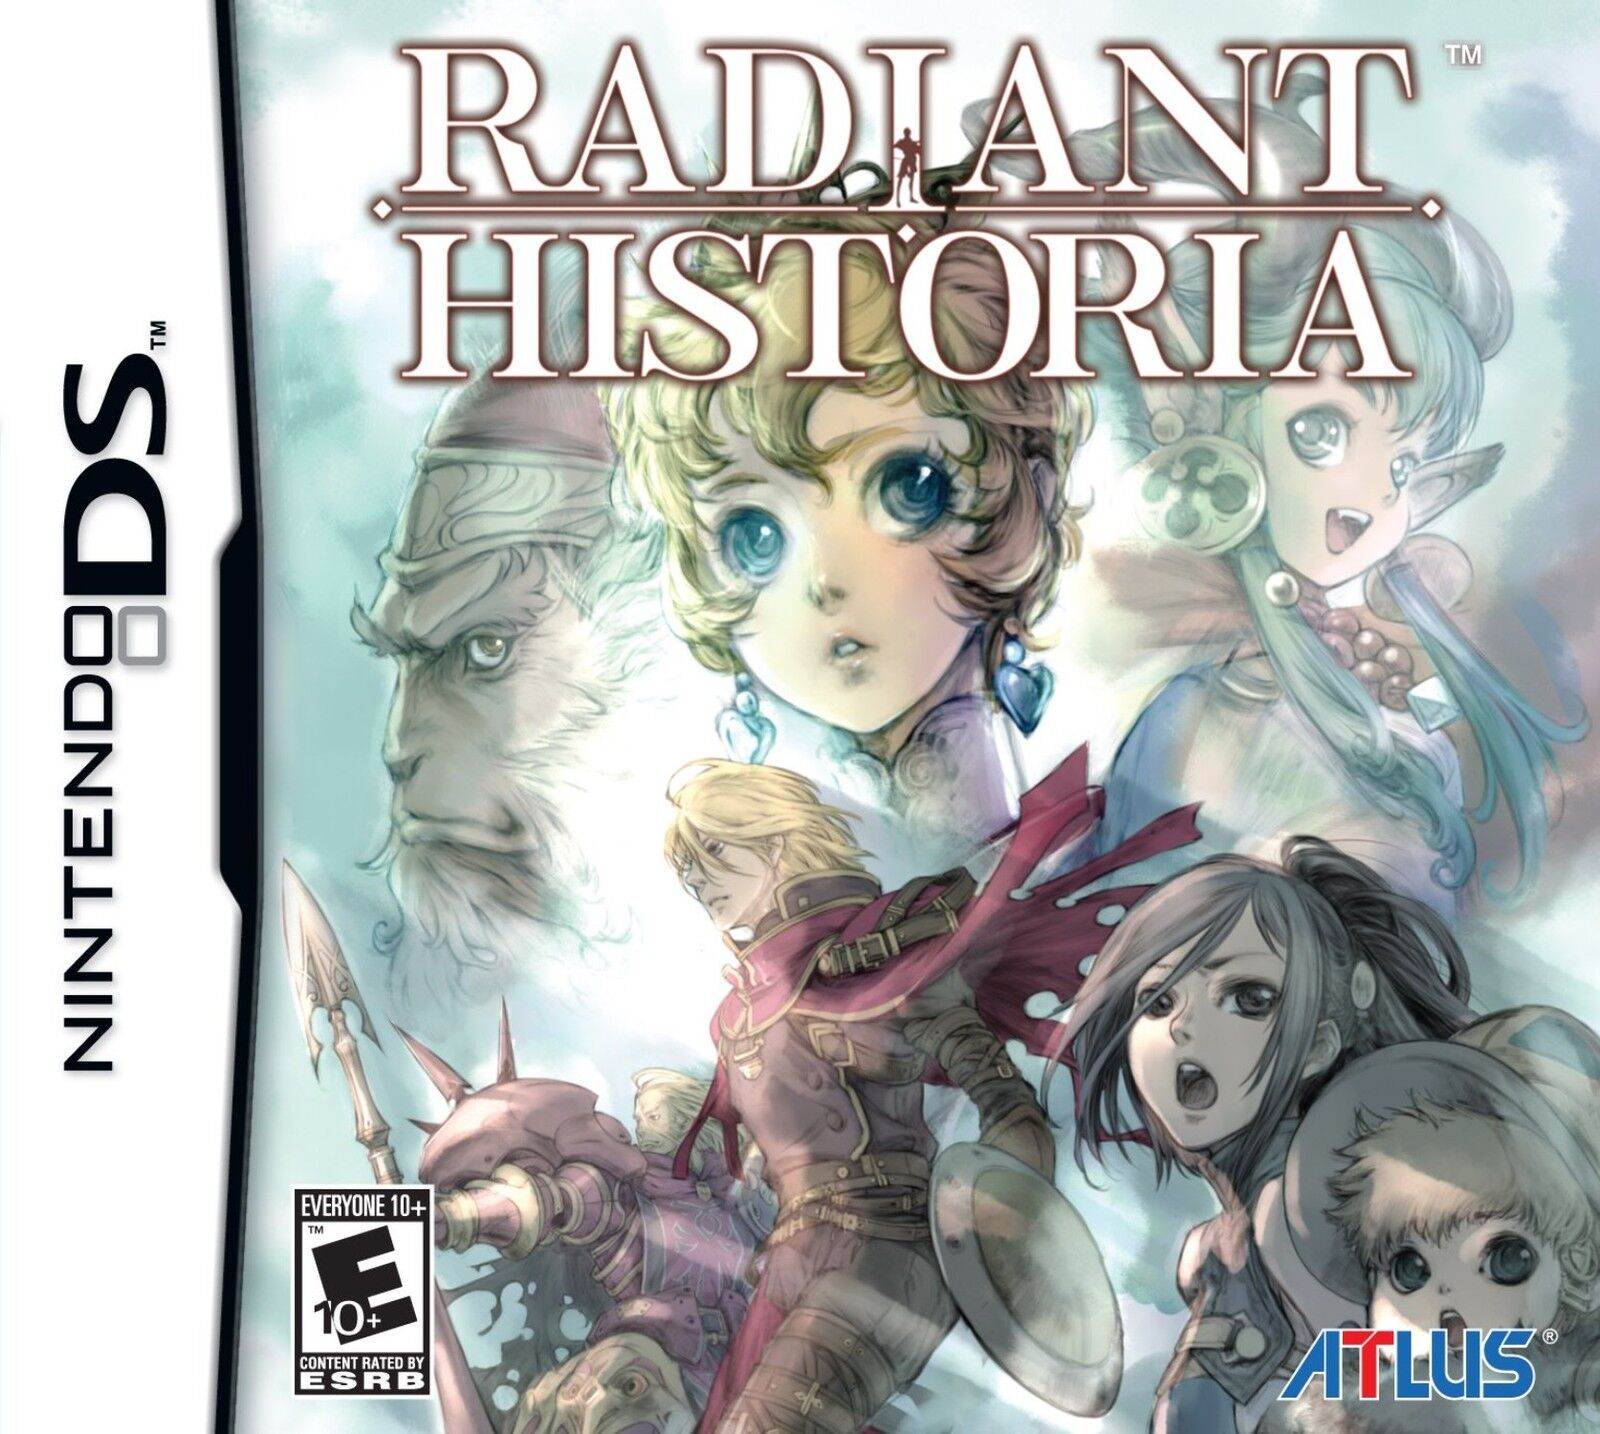 $22.95 - Radiant Historia Nintendo DS Game Brand New and Sealed